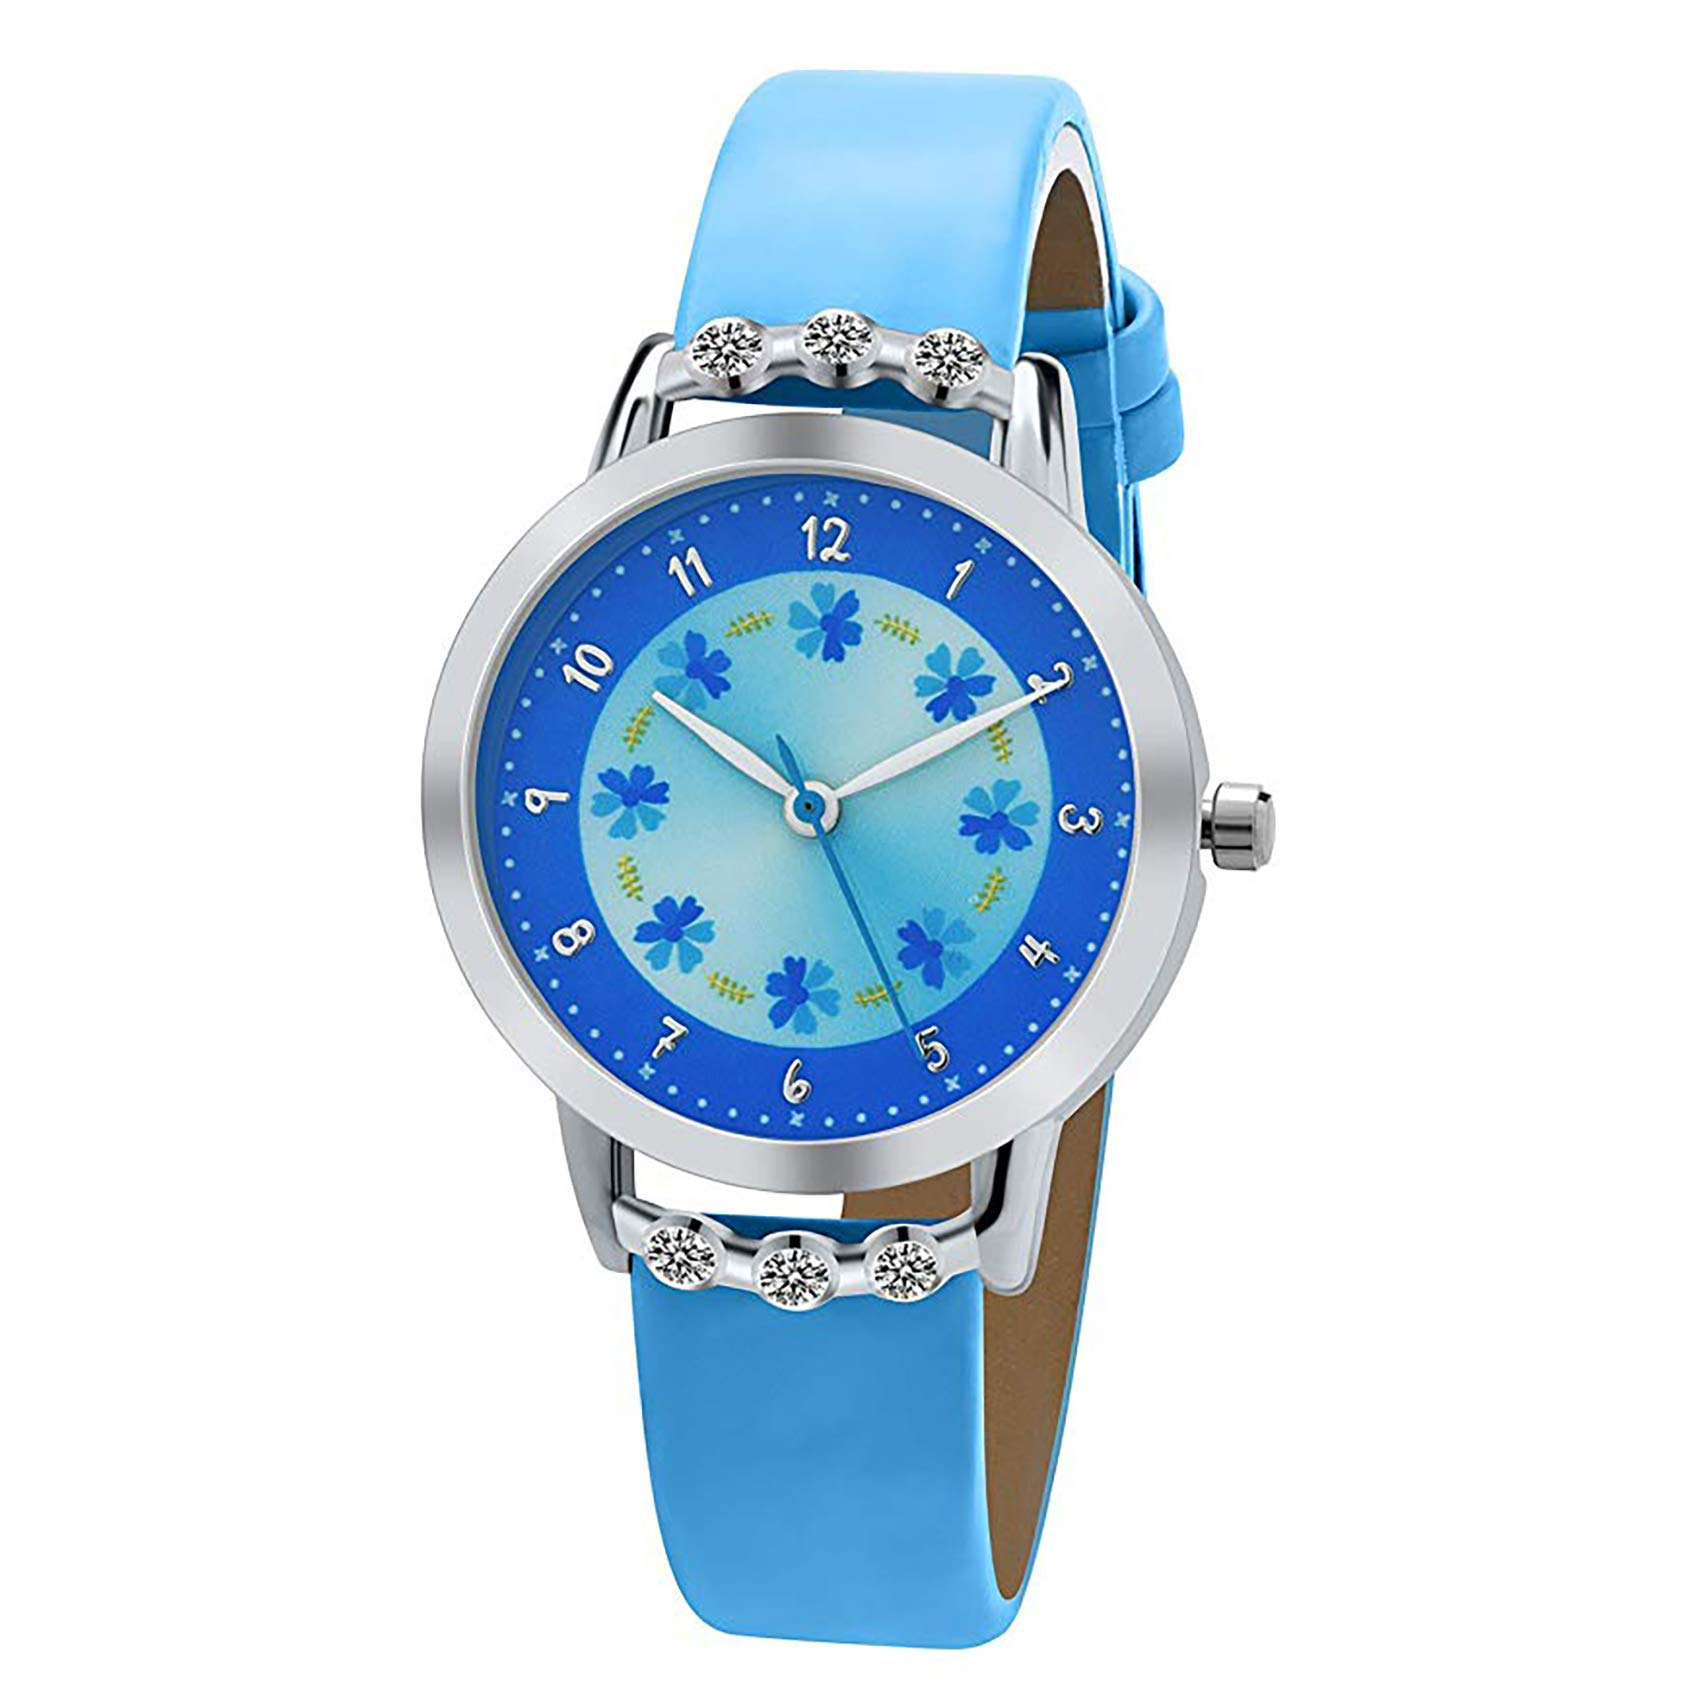 Girls Watches,Flowers Diamond Wrist Watch PU Leather Band Analog Quartz Cute Waterproof Watches for Kids Girls